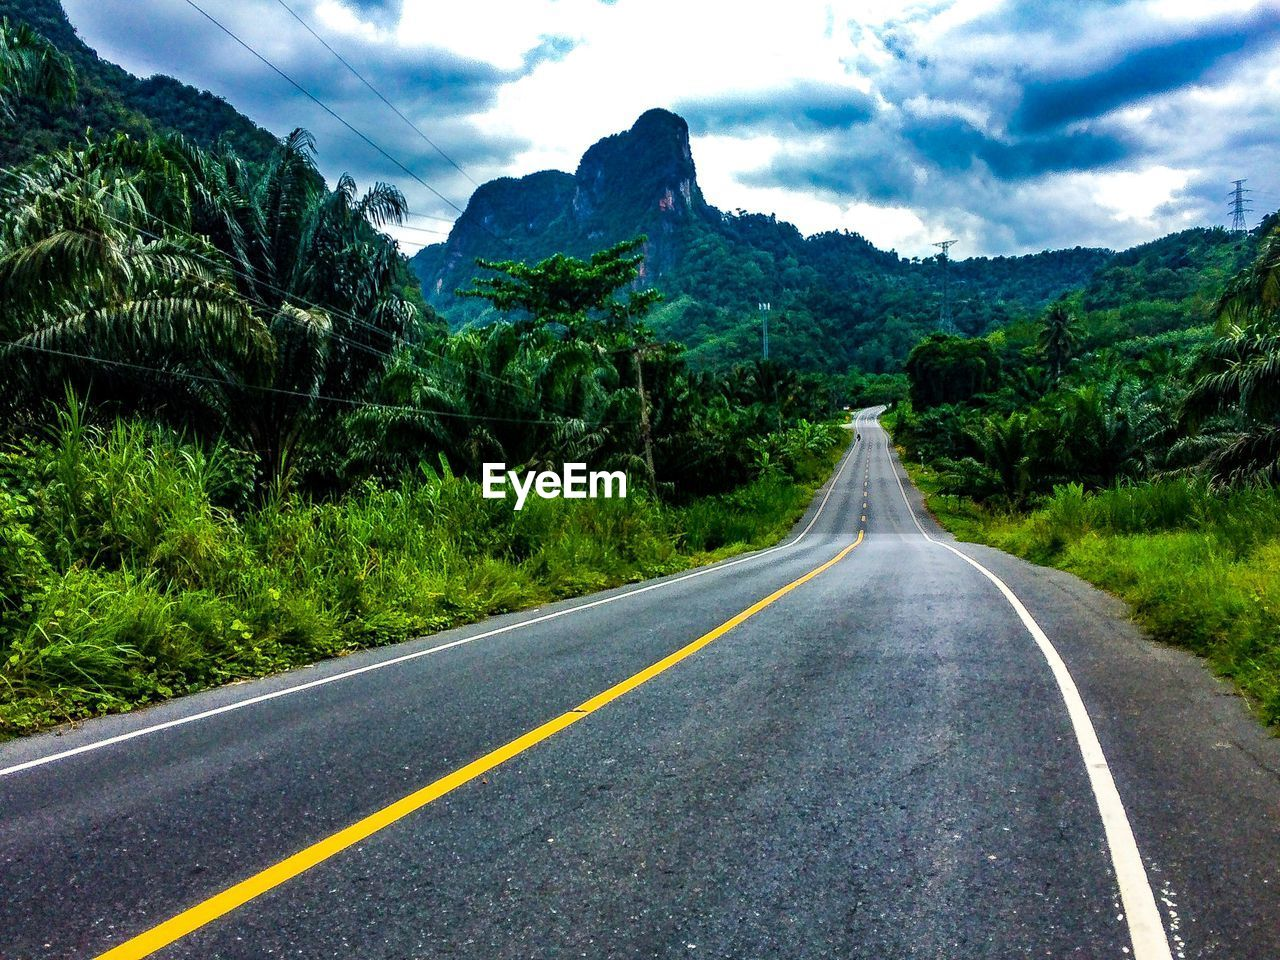 road, mountain, the way forward, transportation, direction, sign, symbol, cloud - sky, marking, road marking, sky, plant, beauty in nature, no people, tree, landscape, mountain range, environment, scenics - nature, nature, diminishing perspective, outdoors, dividing line, long